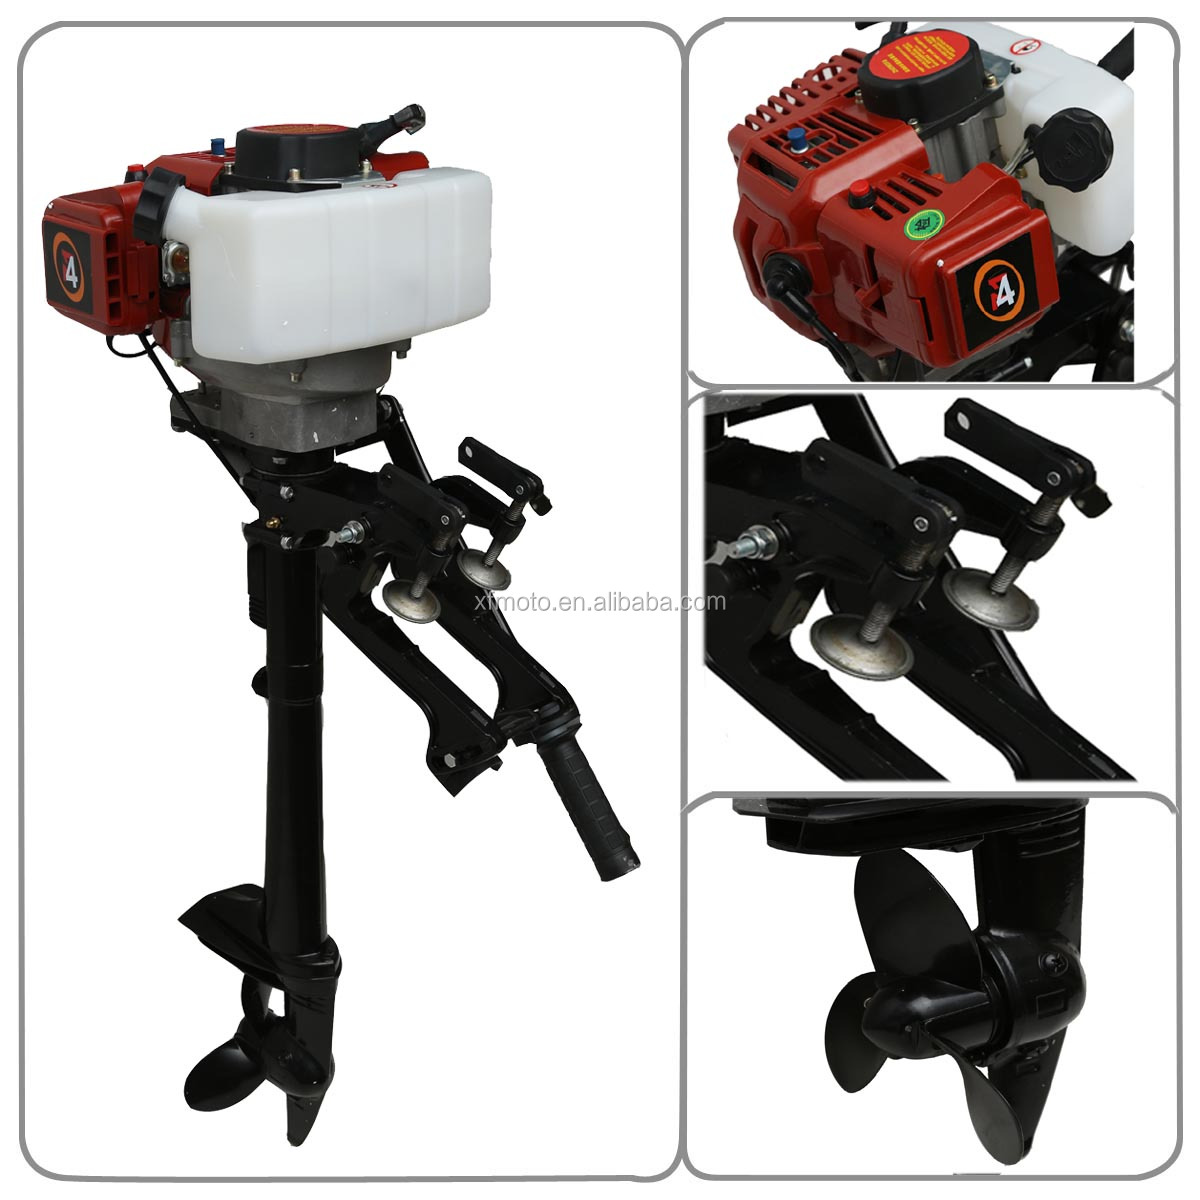 New 4hp two stroke outboard motor boat engine wind cooling for Boat lift motors near me